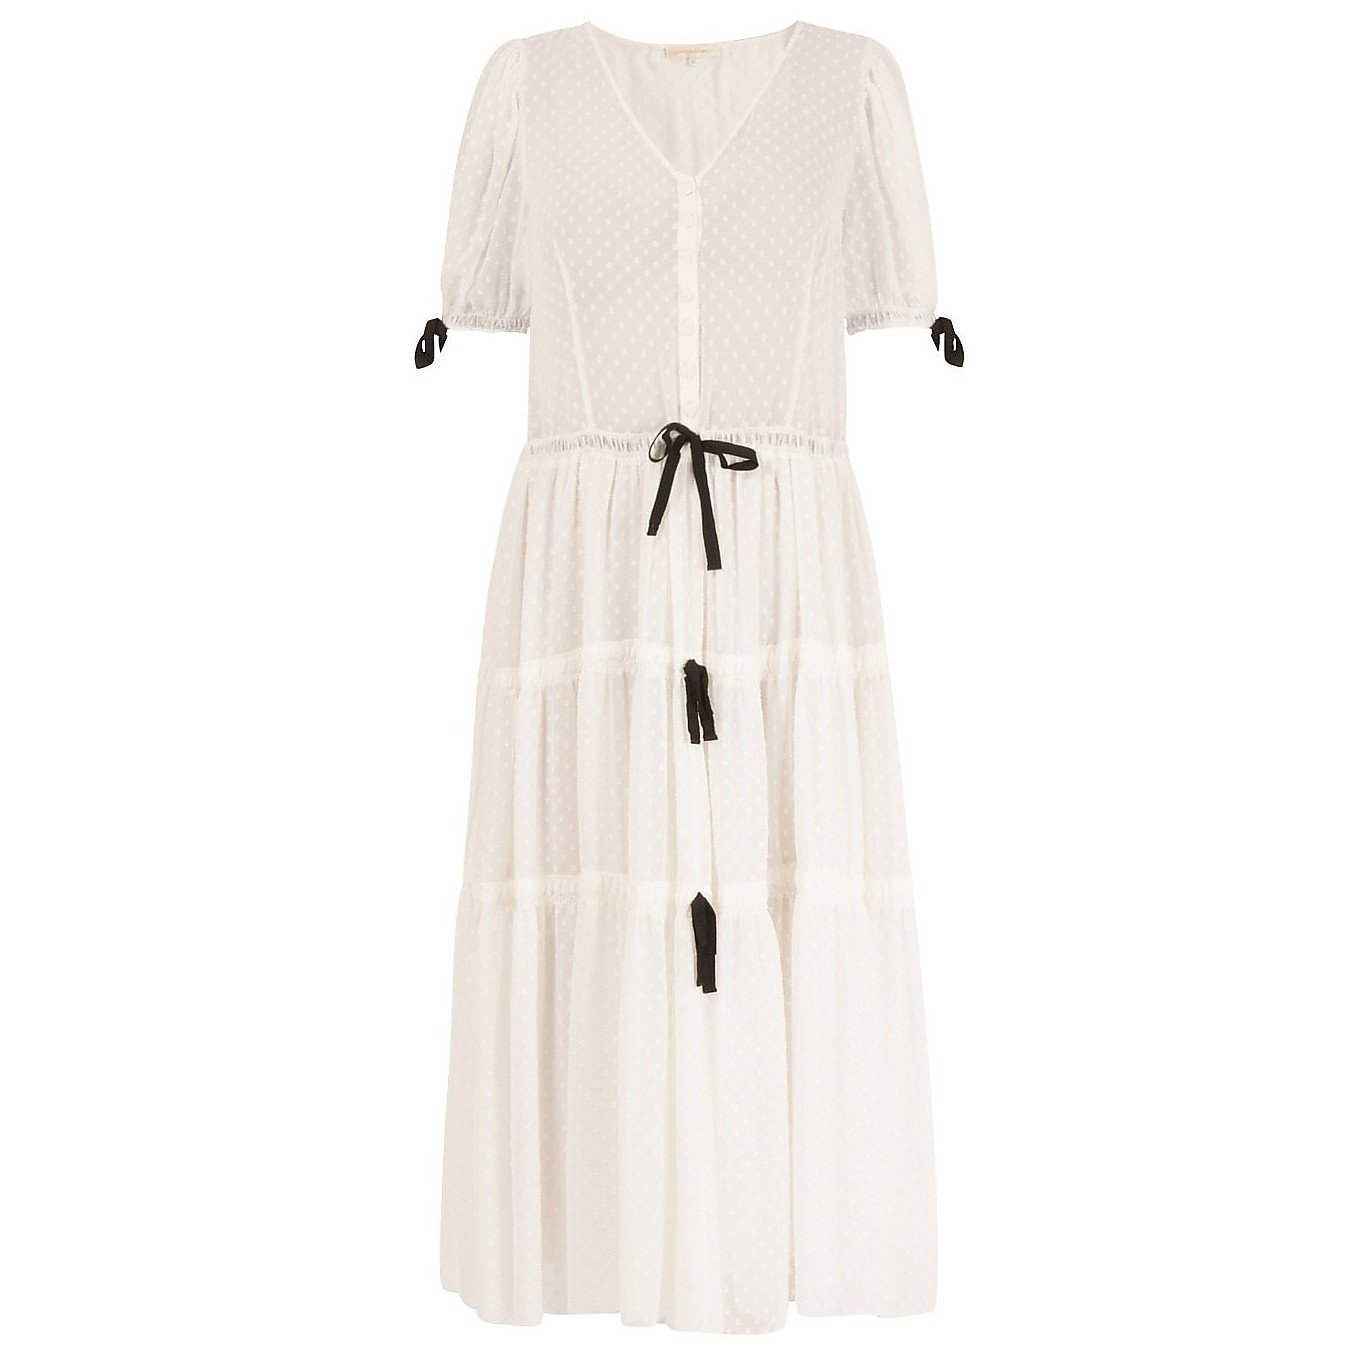 Love Shack Fancy Sheer Tiered Dotted Dress